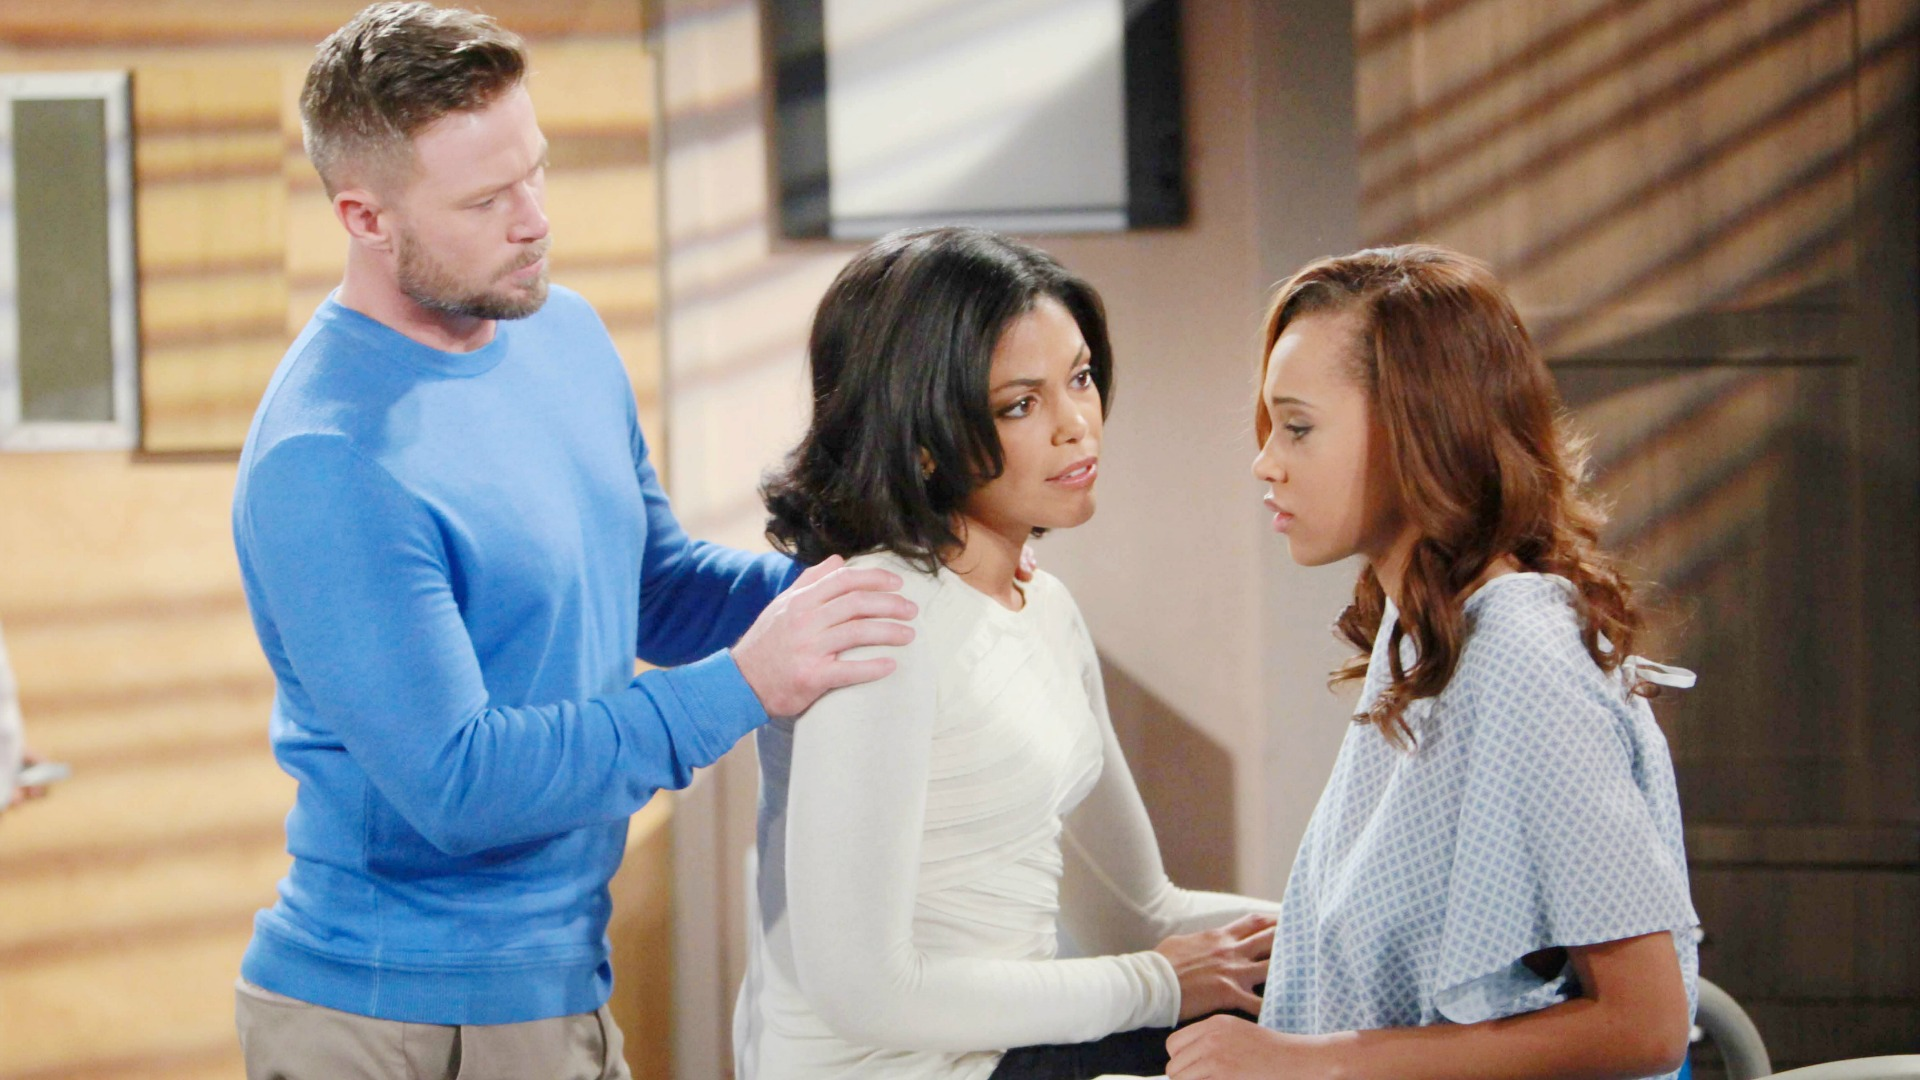 Just prior to her procedure, Rick and Maya offer Nicole the opportunity to change her mind.